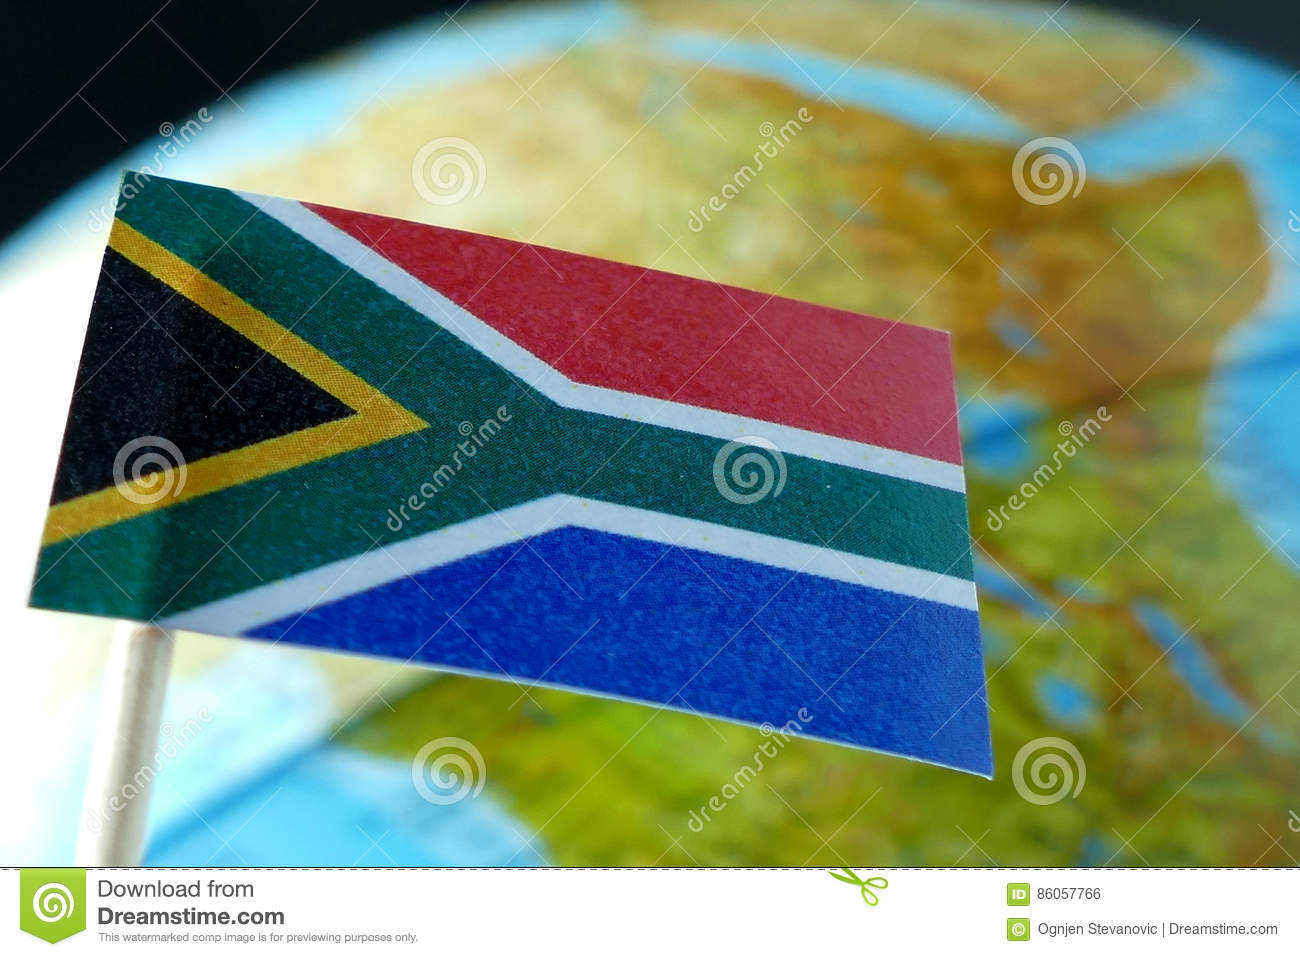 South Africa flag with a globe map as a background